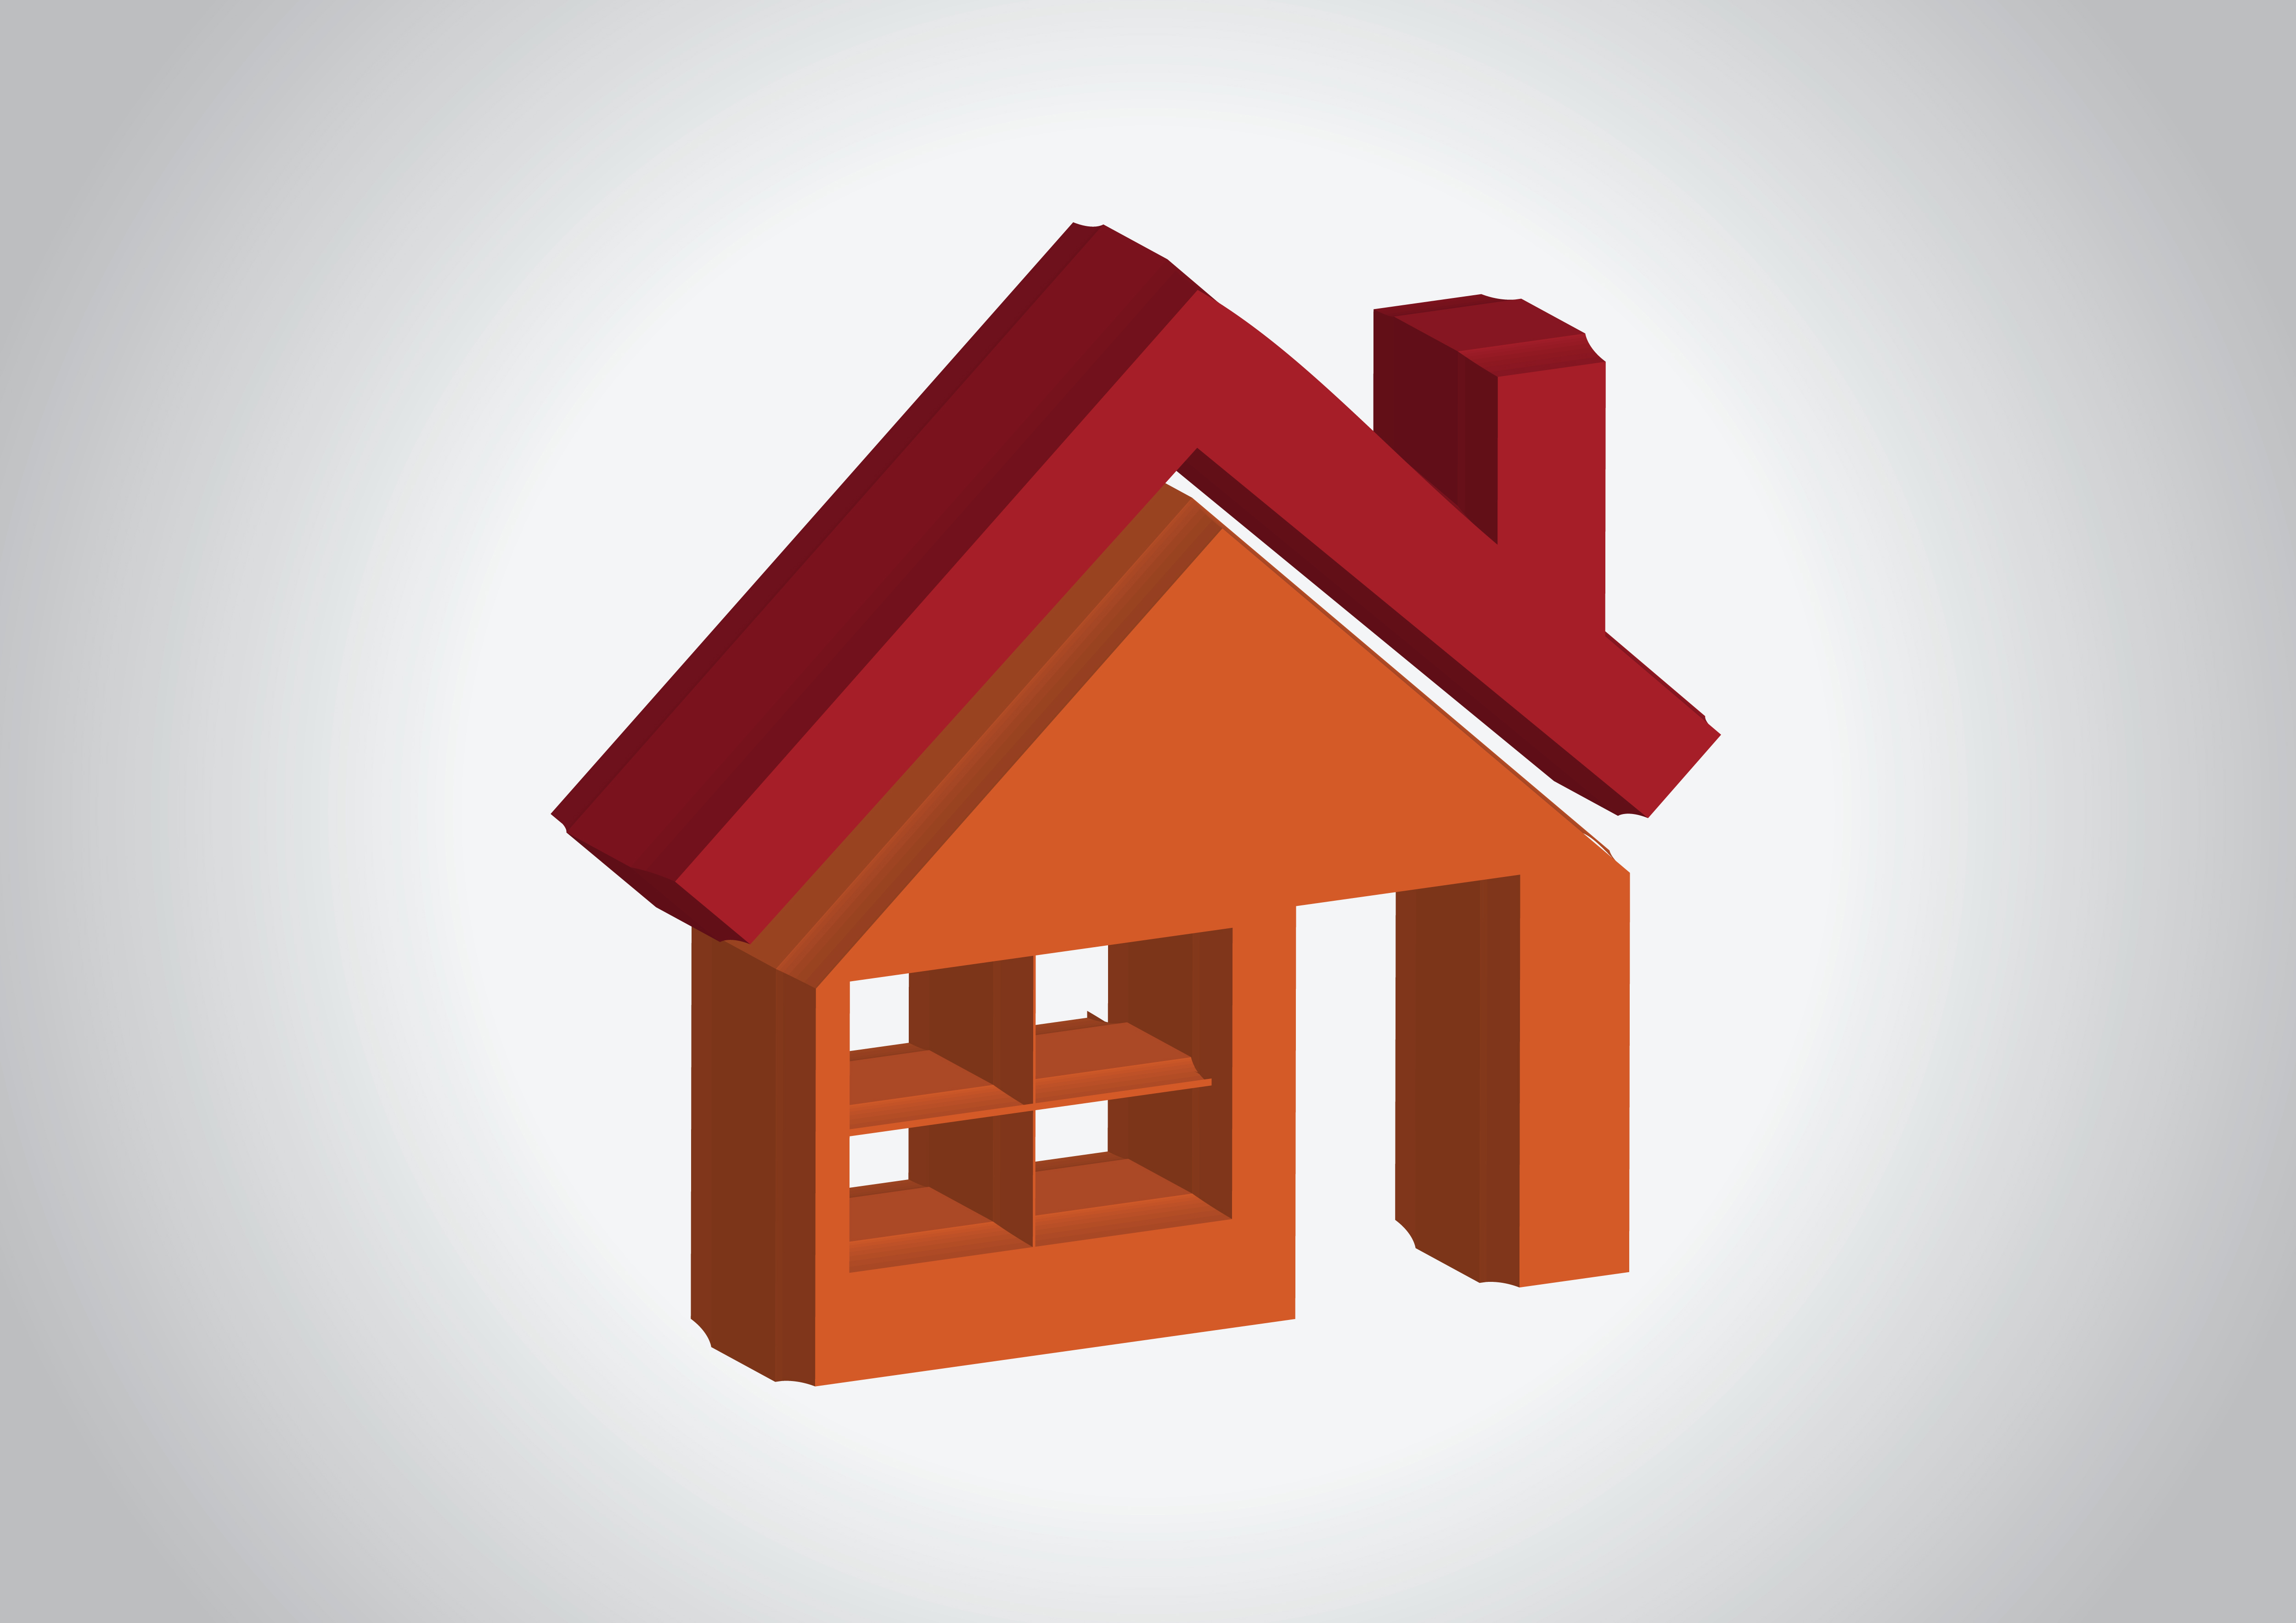 House Icon And Real Estate Building Abstract Design Download Free Vectors Clipart Graphics